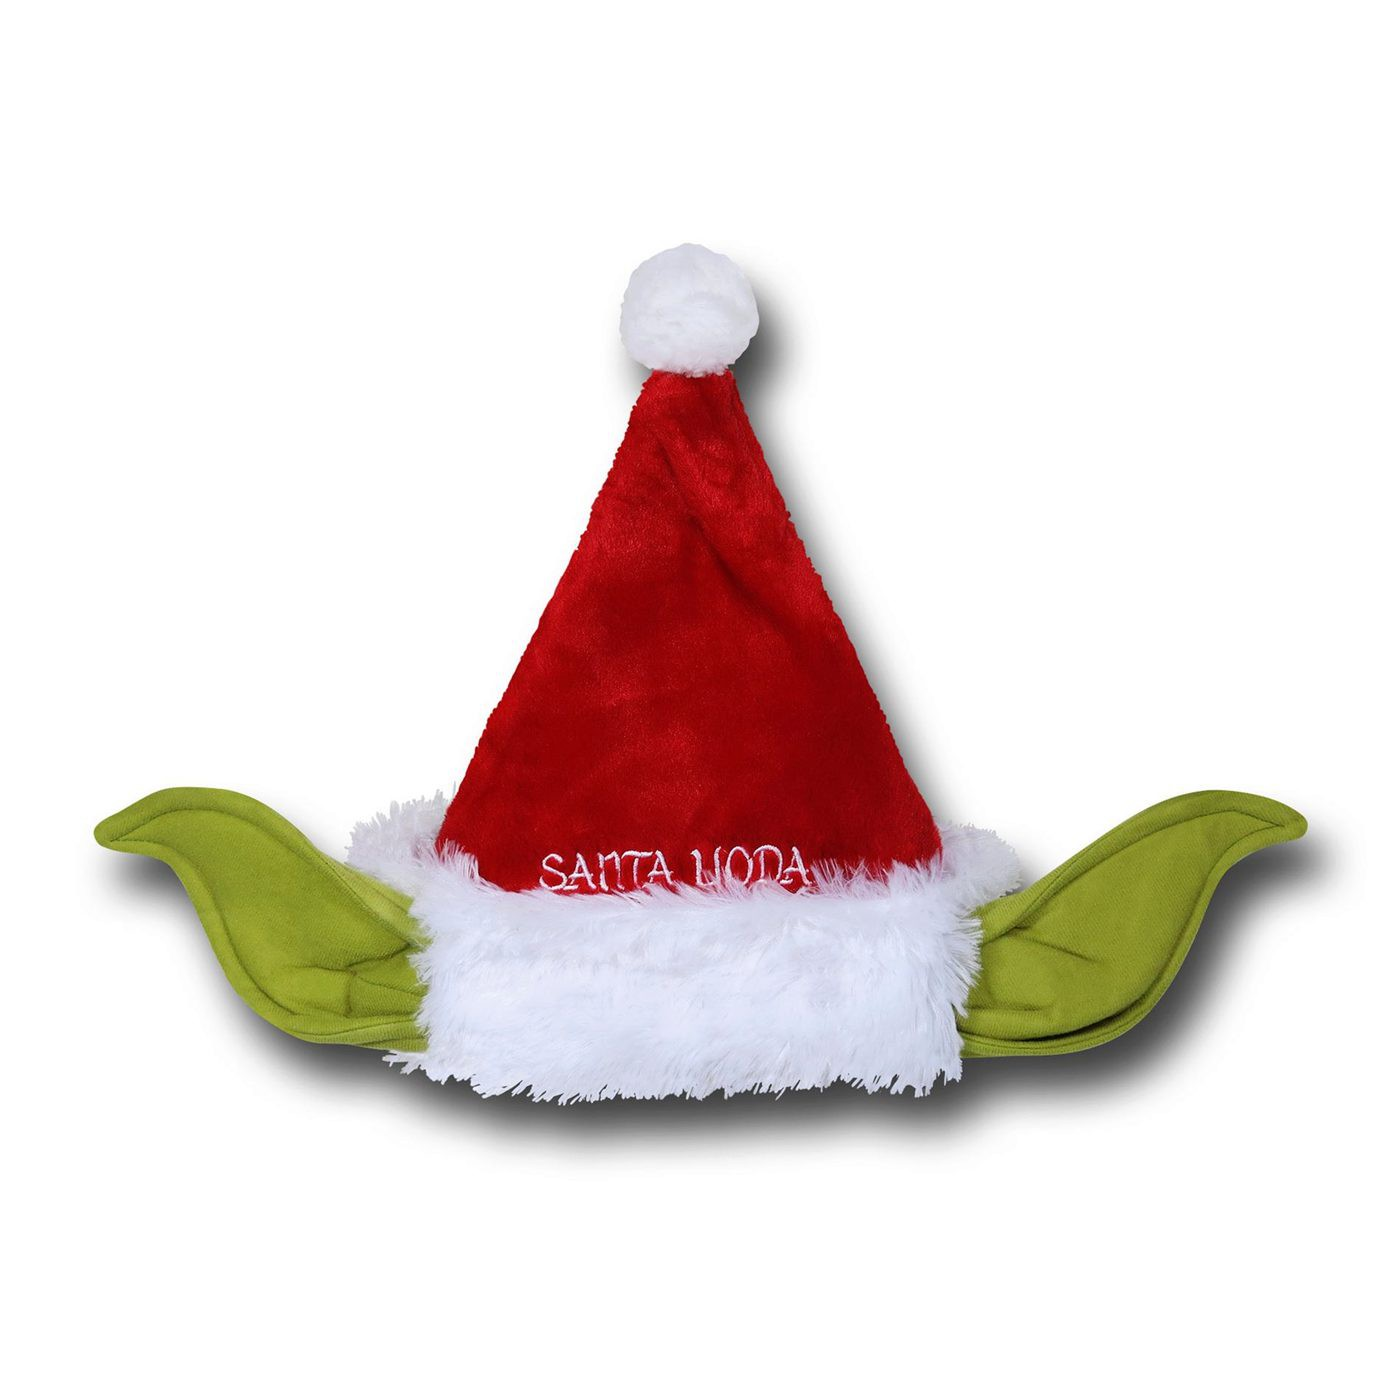 Star Wars Yoda Santa Hat